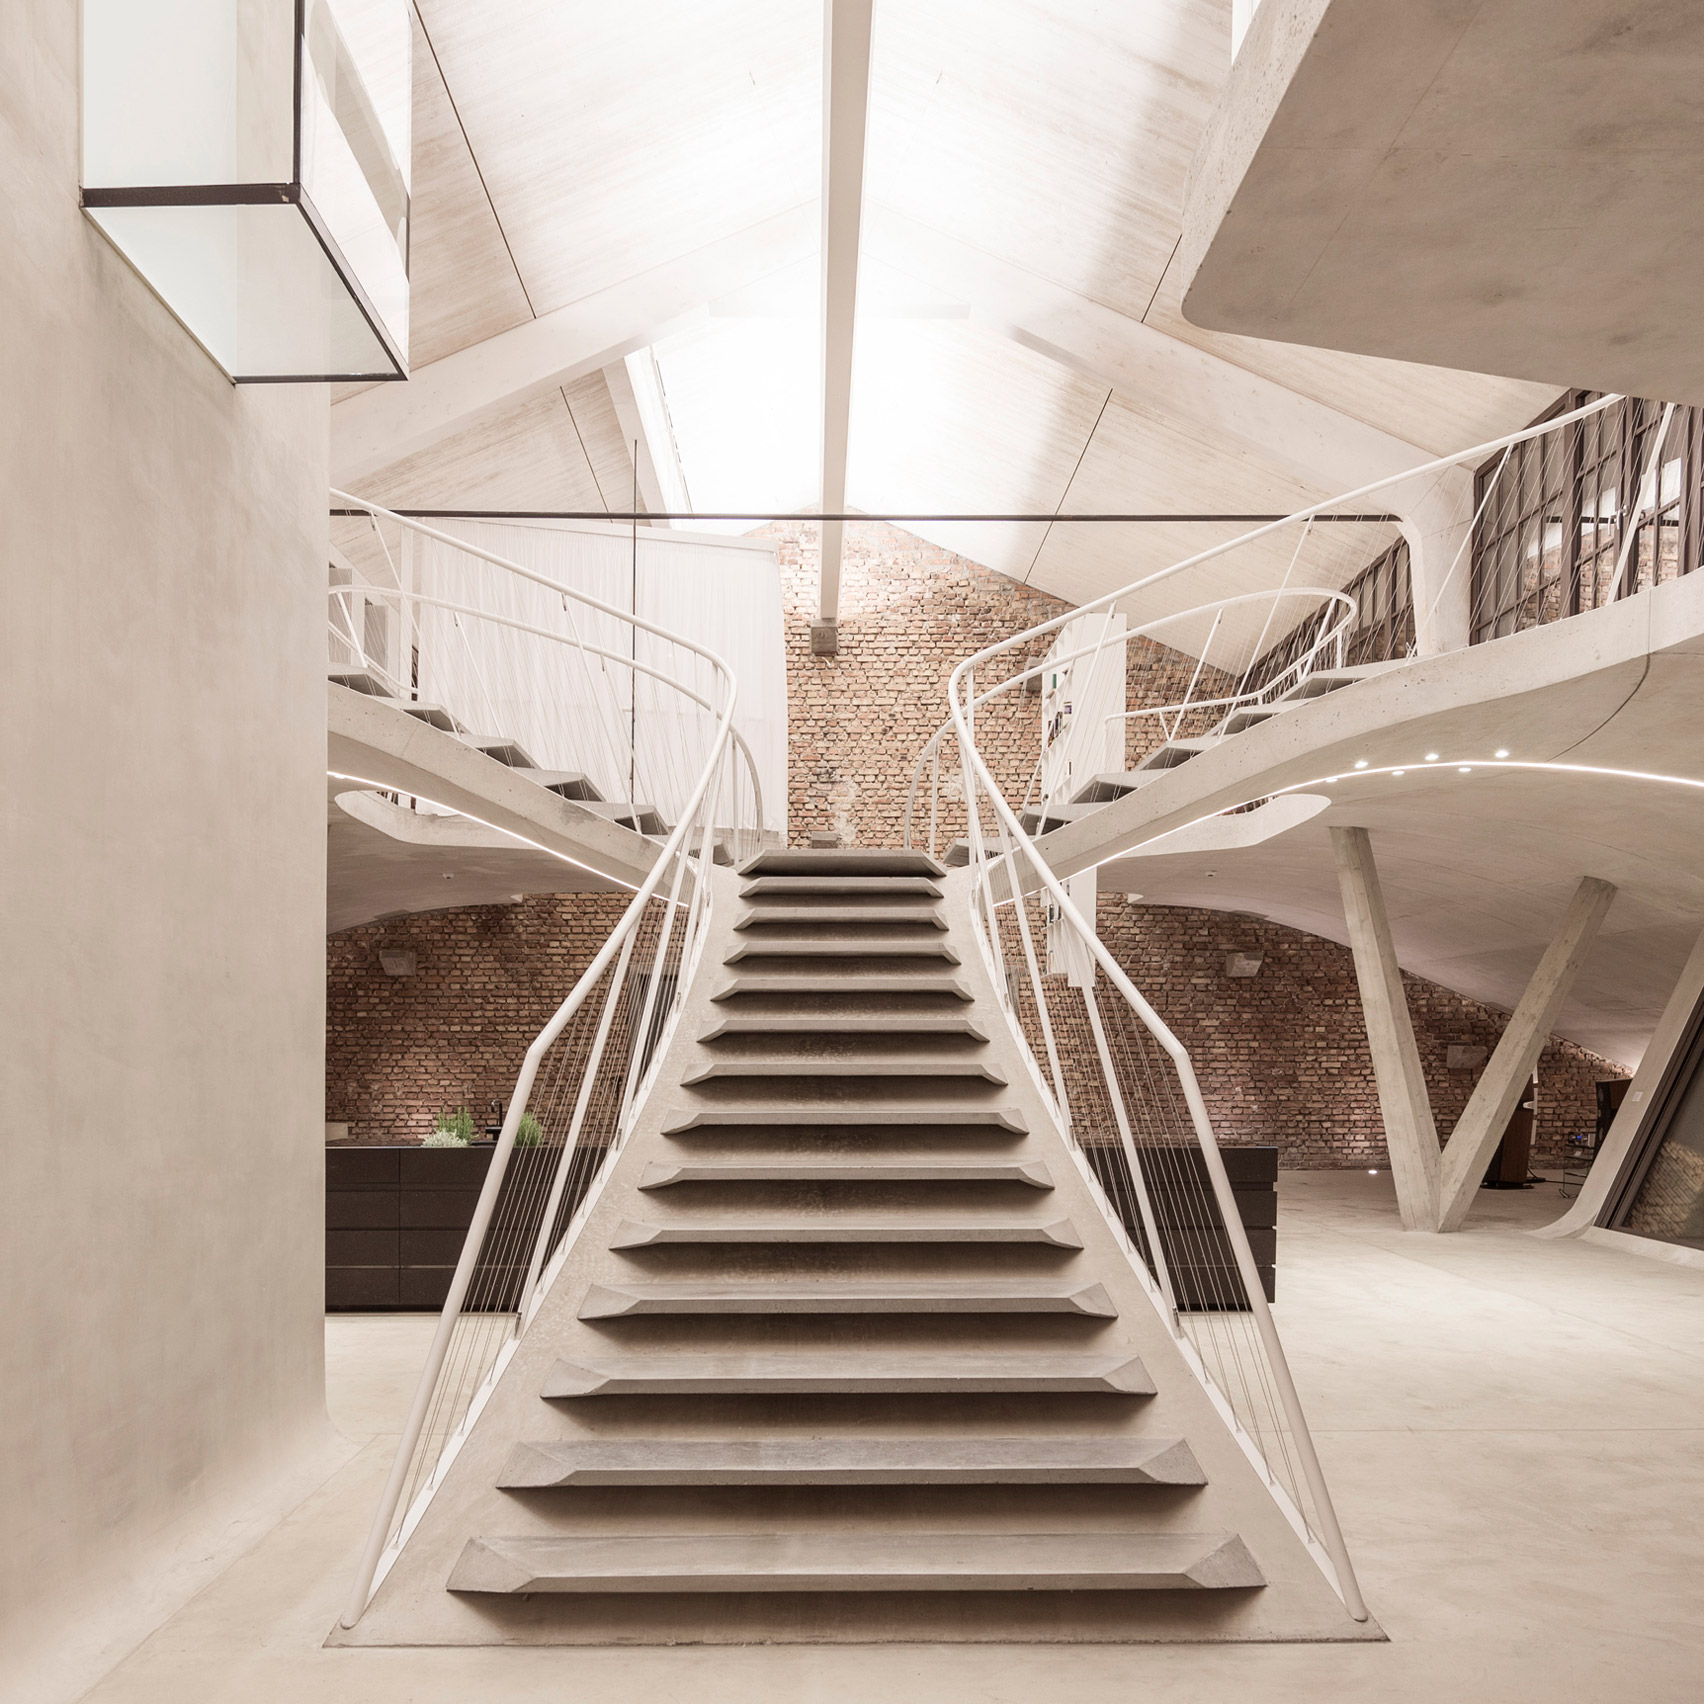 Dezeen s top 10 staircases of 2017 architectural cad for Architectural stairs